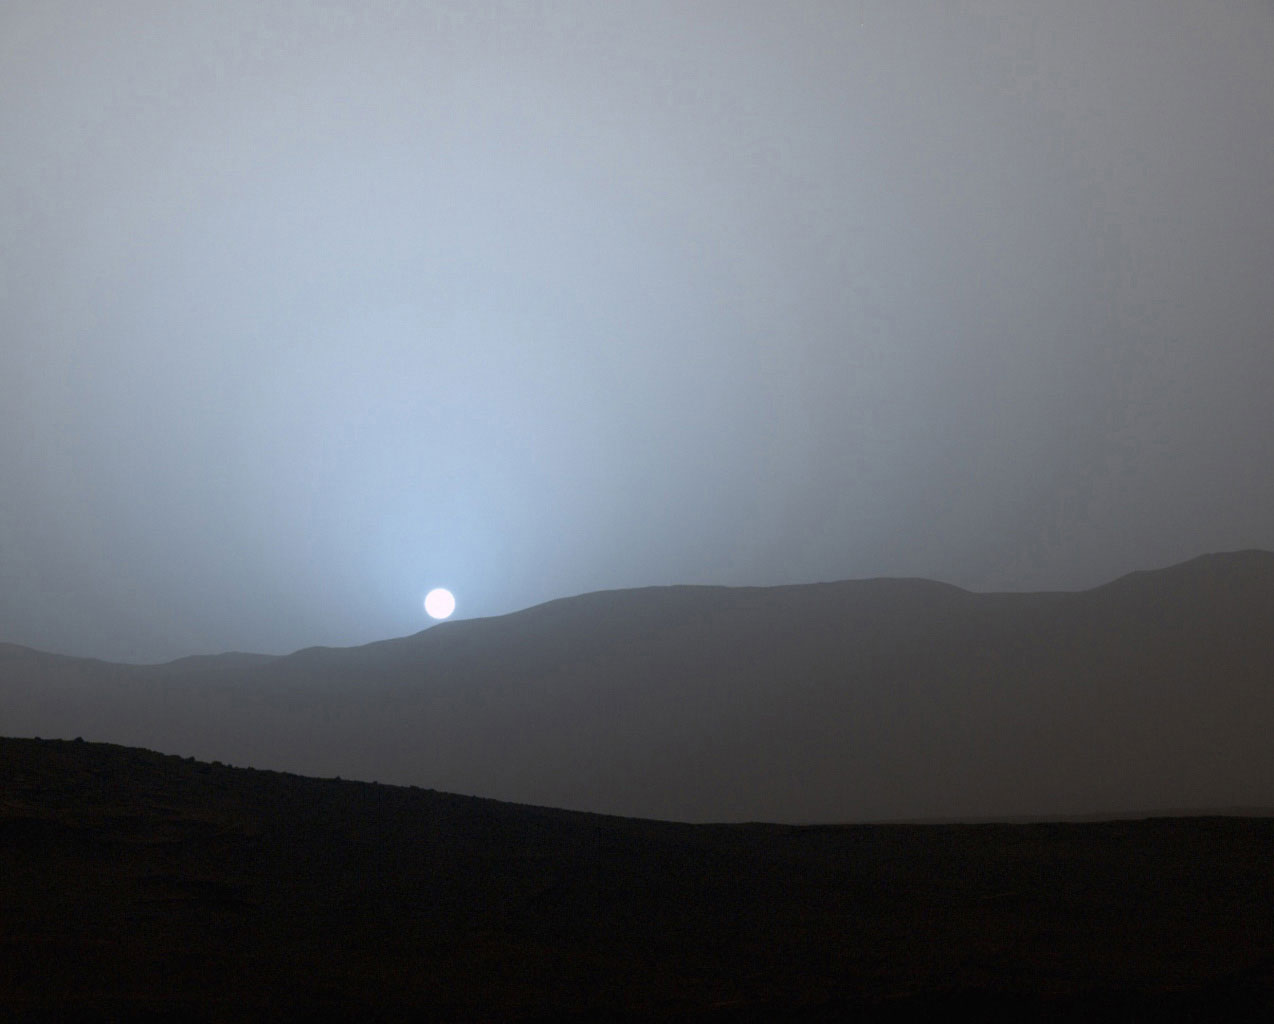 NASA's Curiosity Mars rover recorded this view of the sun setting at the close of the mission's 956th Martian day, or sol, on April 15, 2015, from the rover's location in Gale Crater.  This was the first sunset observed in color by Curiosity.